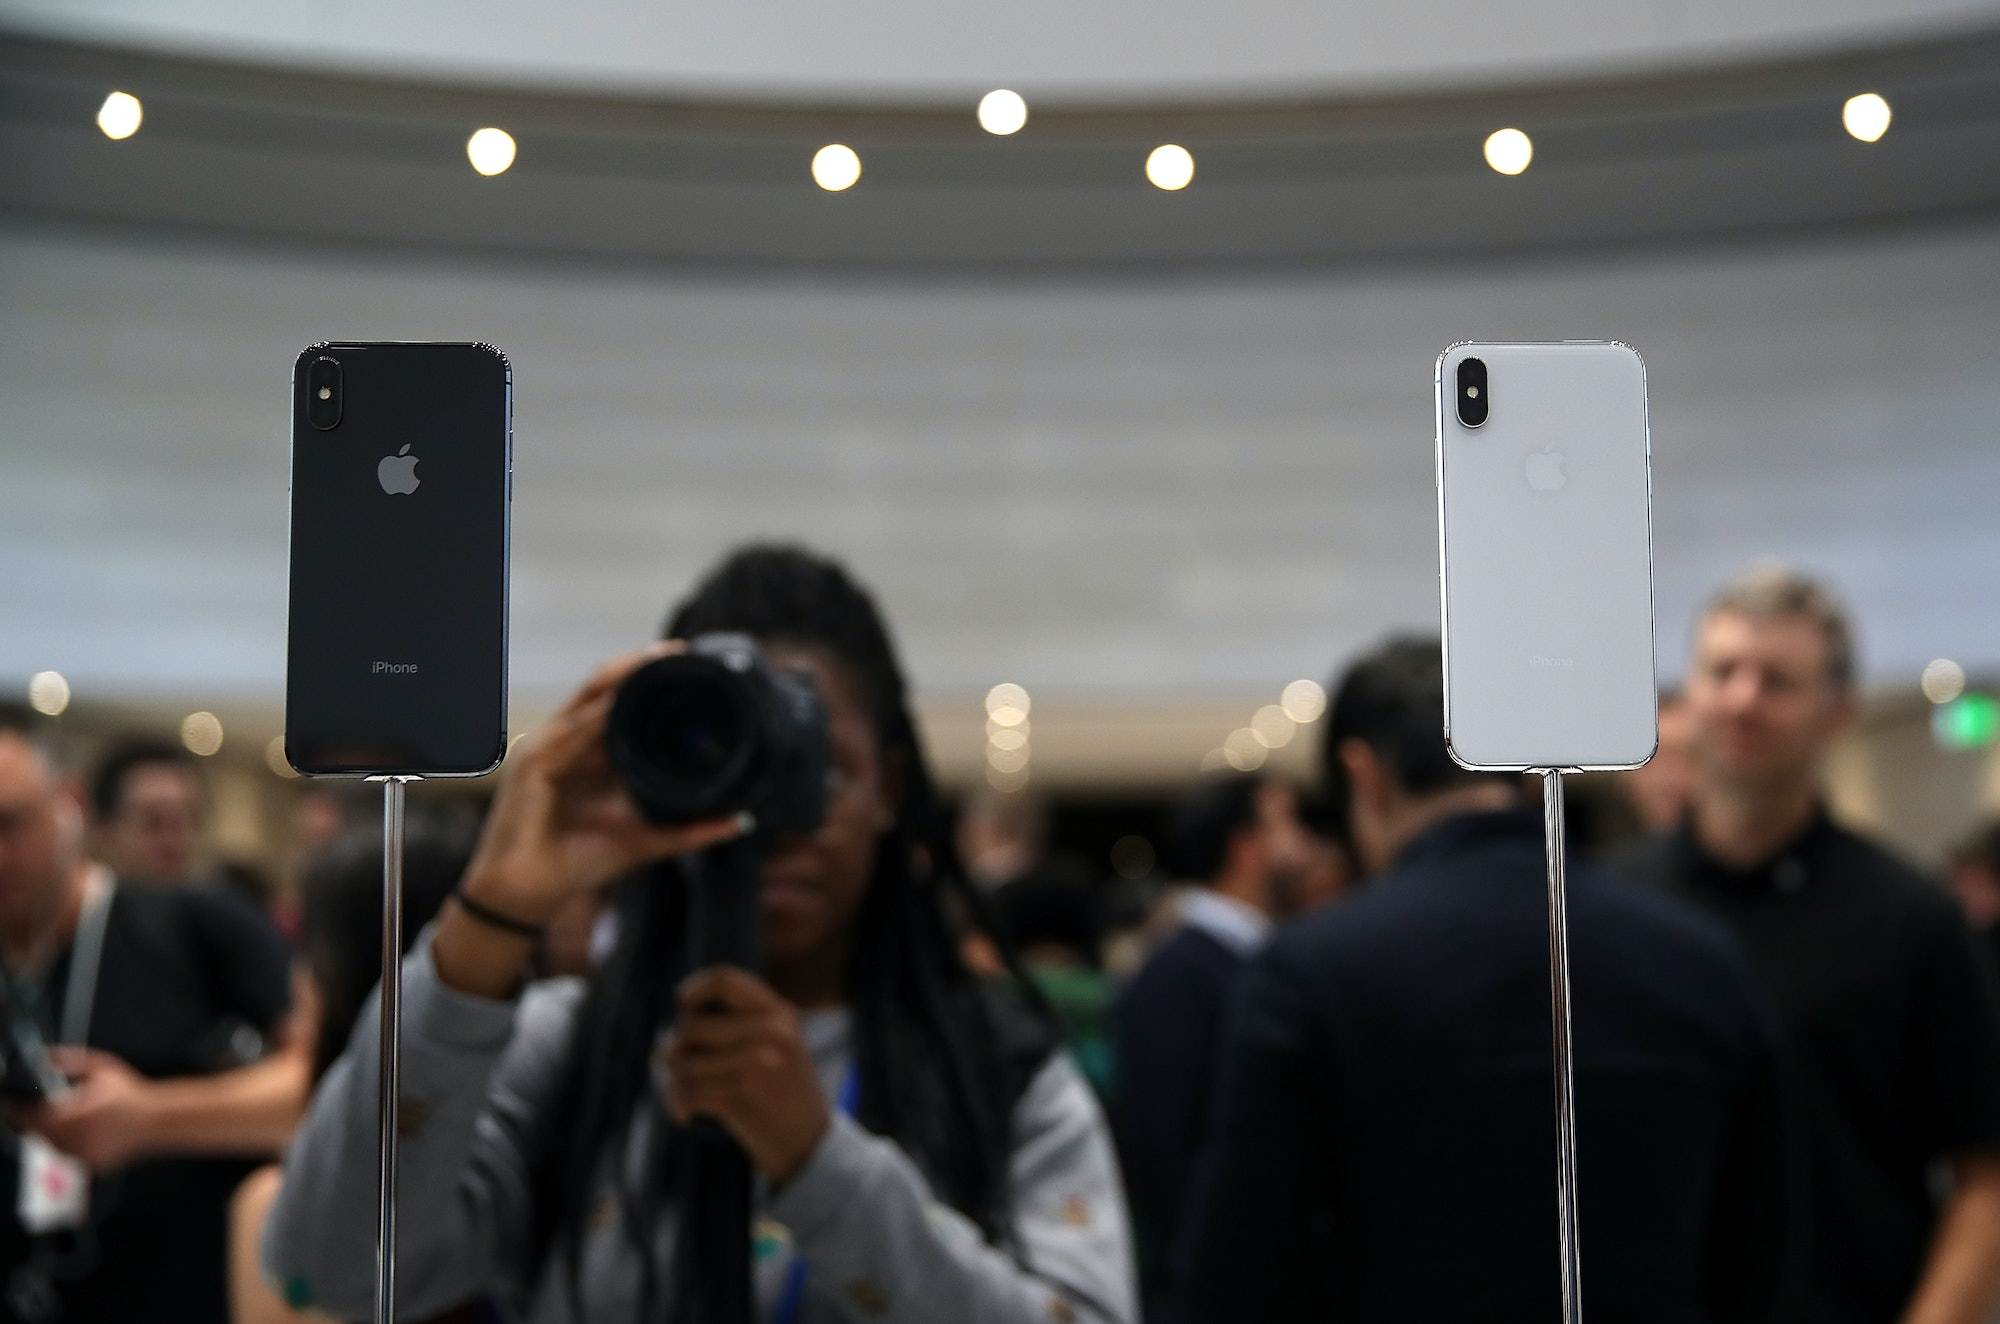 The iPhone X is available in both black and white.